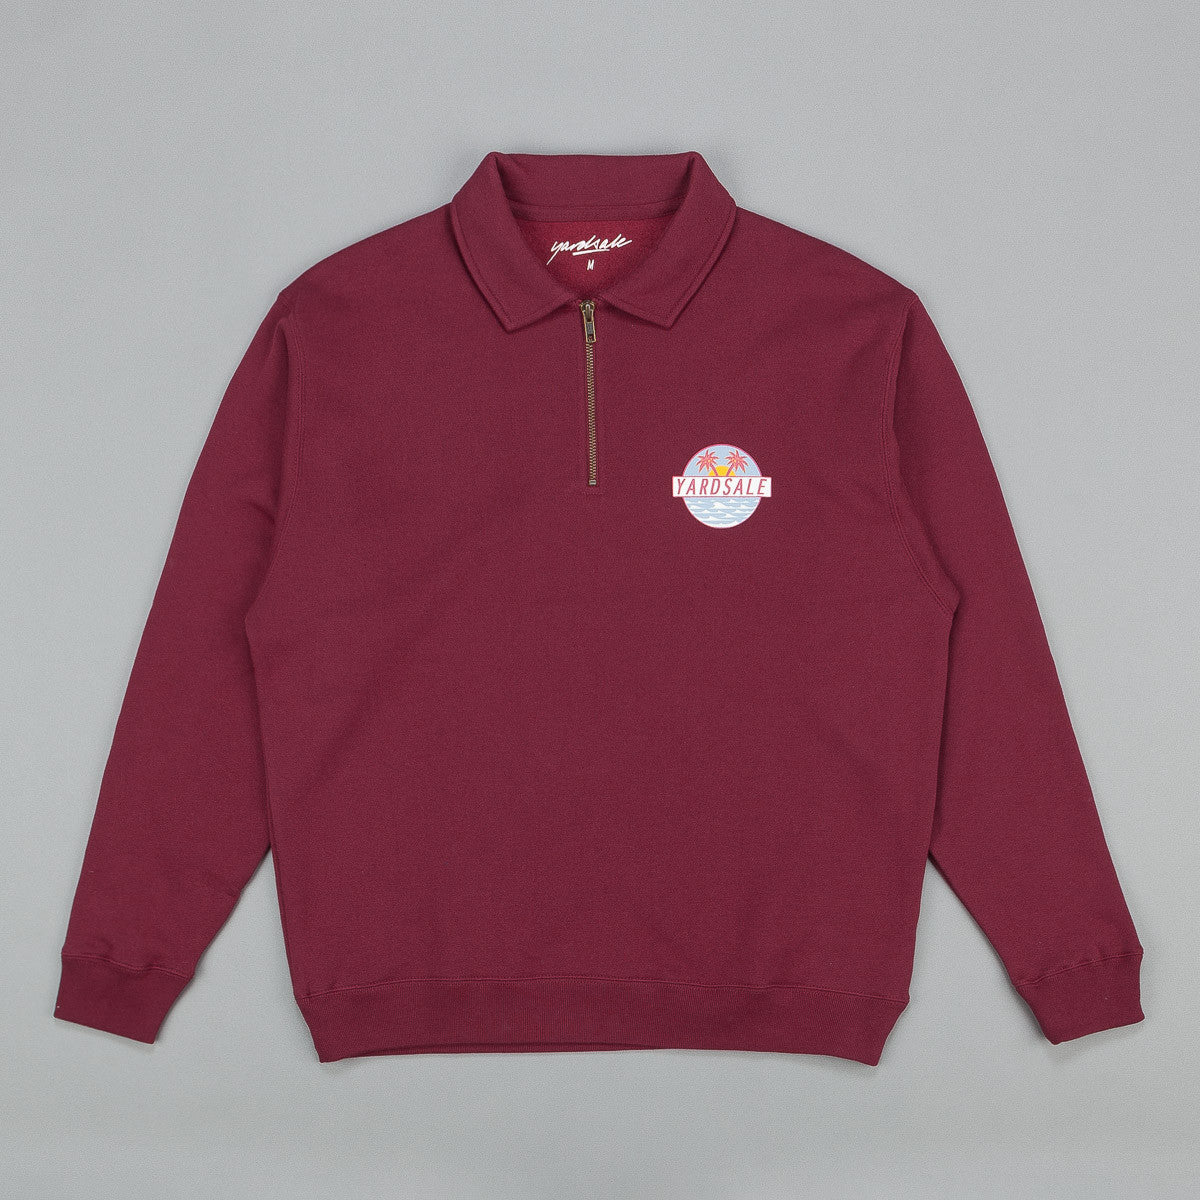 Yardsale Quarterzip Sweatshirt - Shiraz